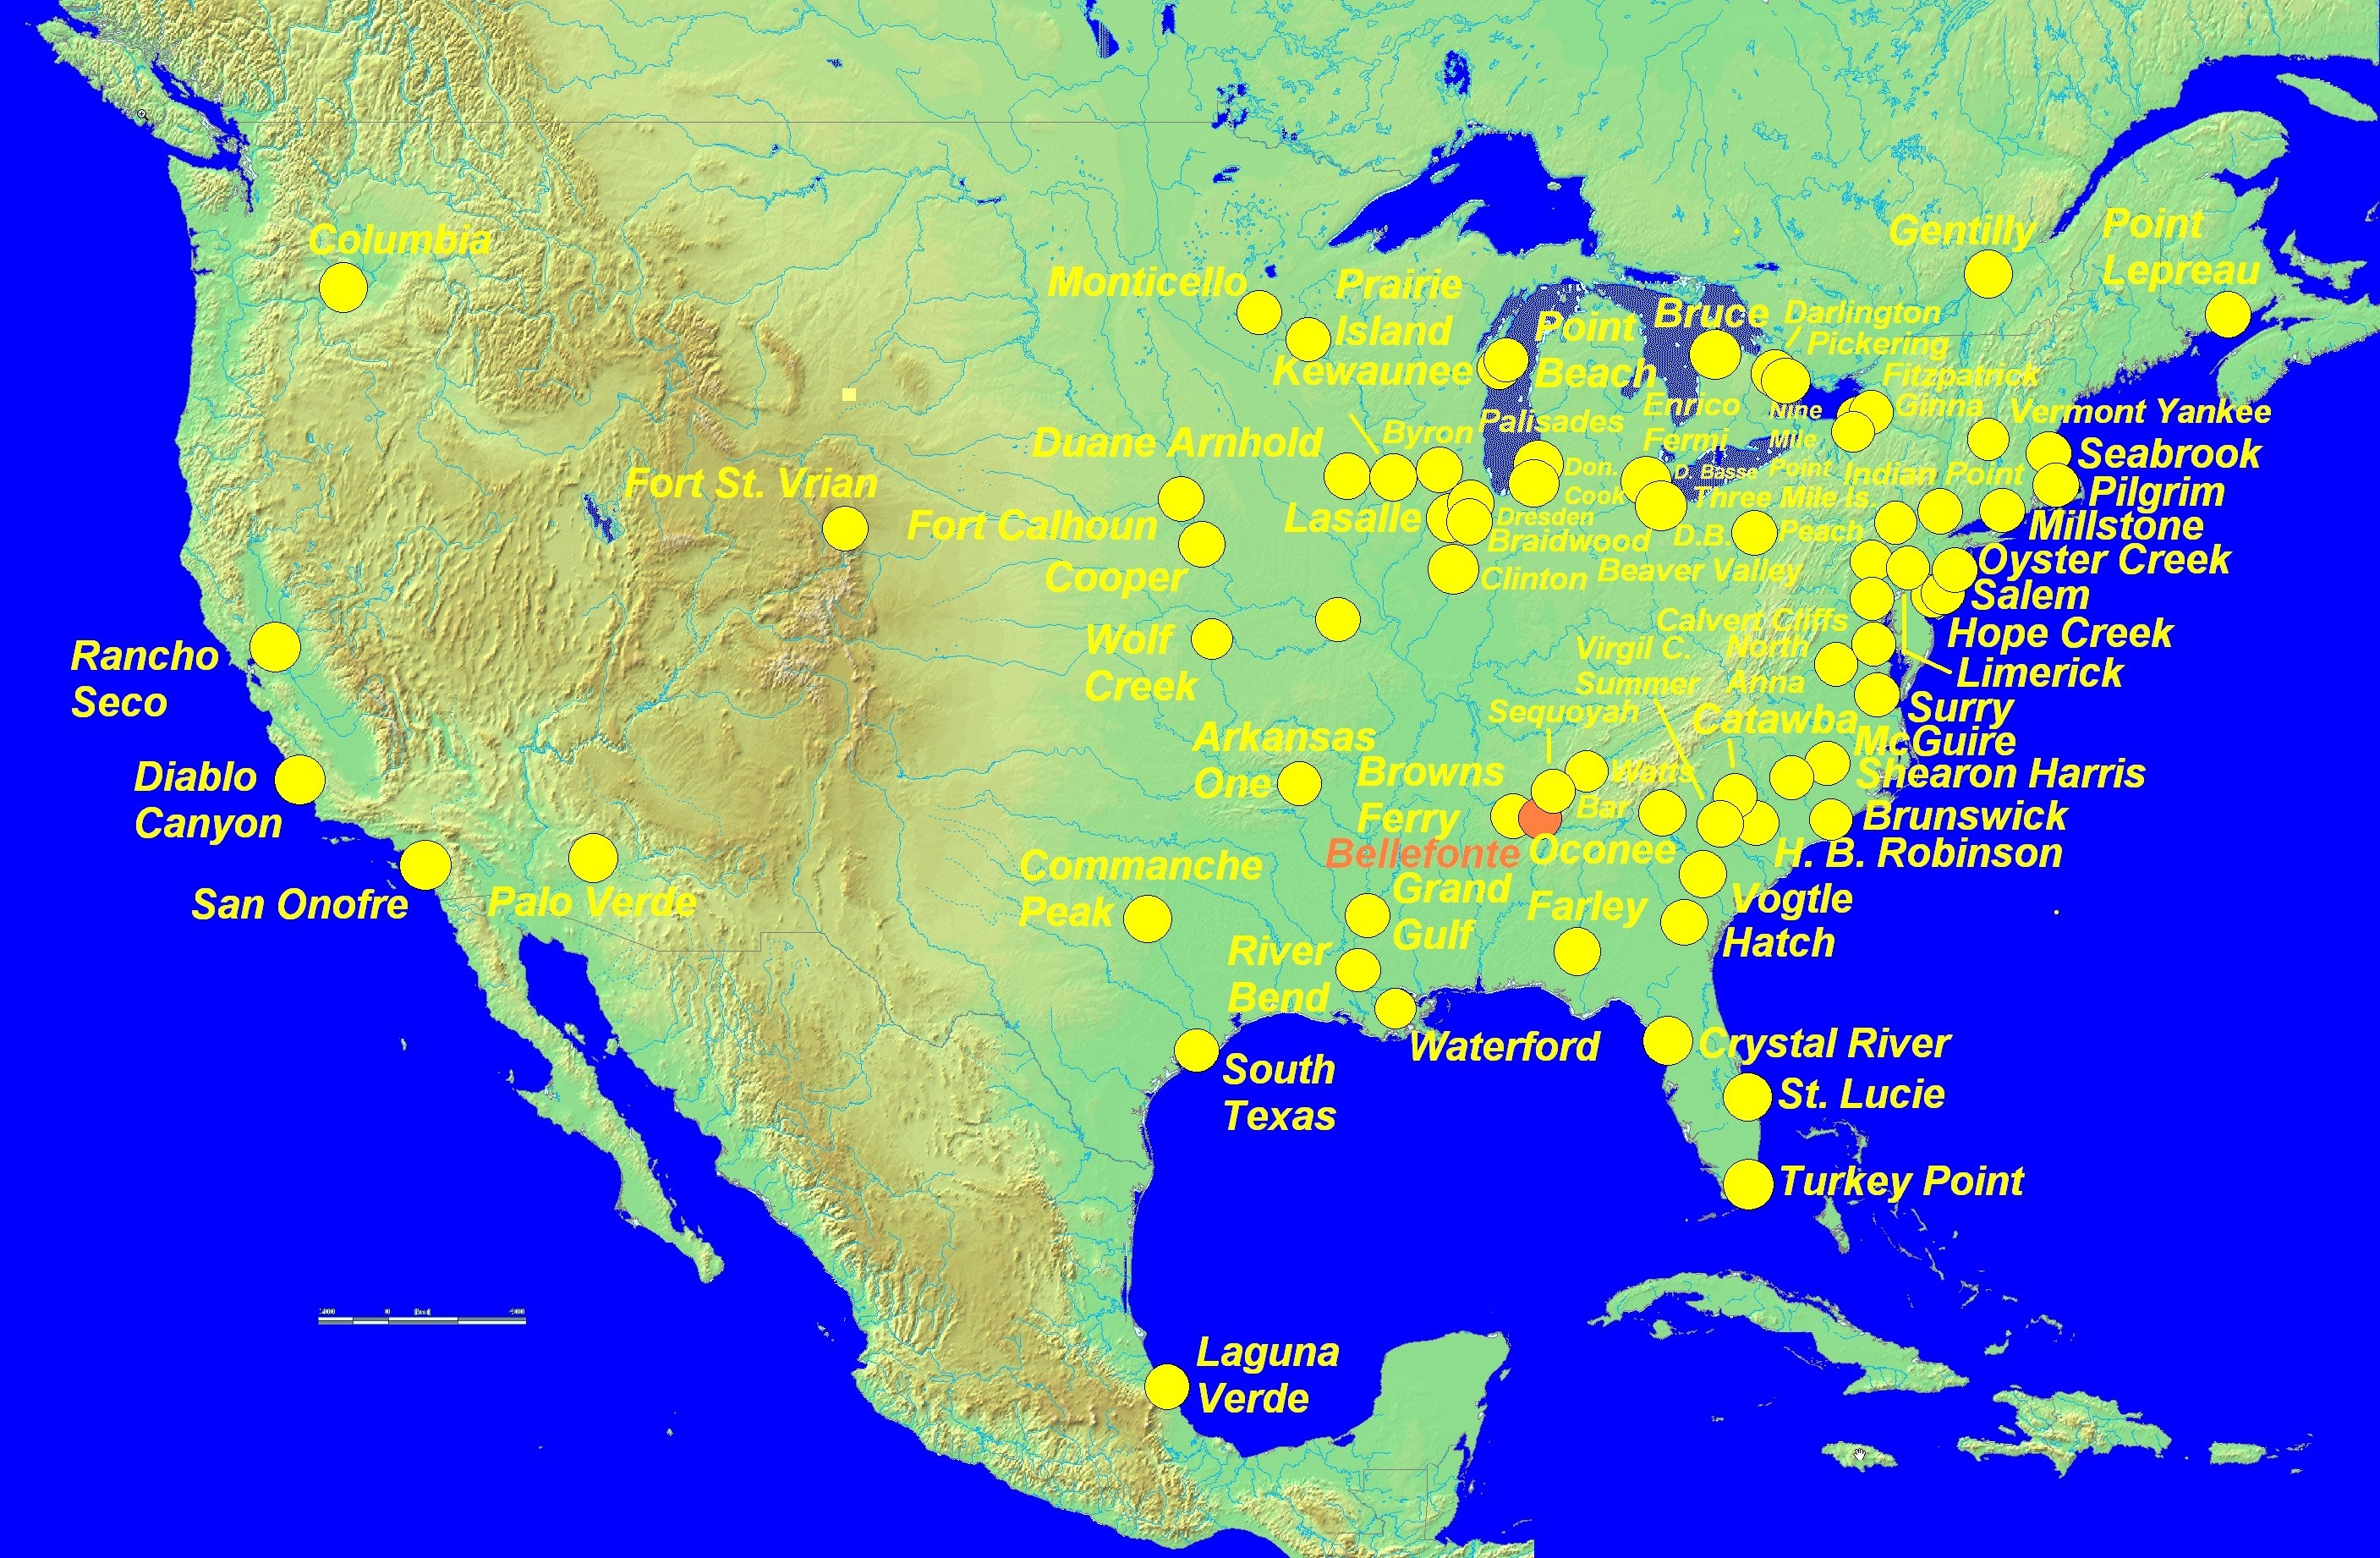 Map Nuclear Power Plants In Us North America Luxury Map Nuclear - Power Plants In Texas Map